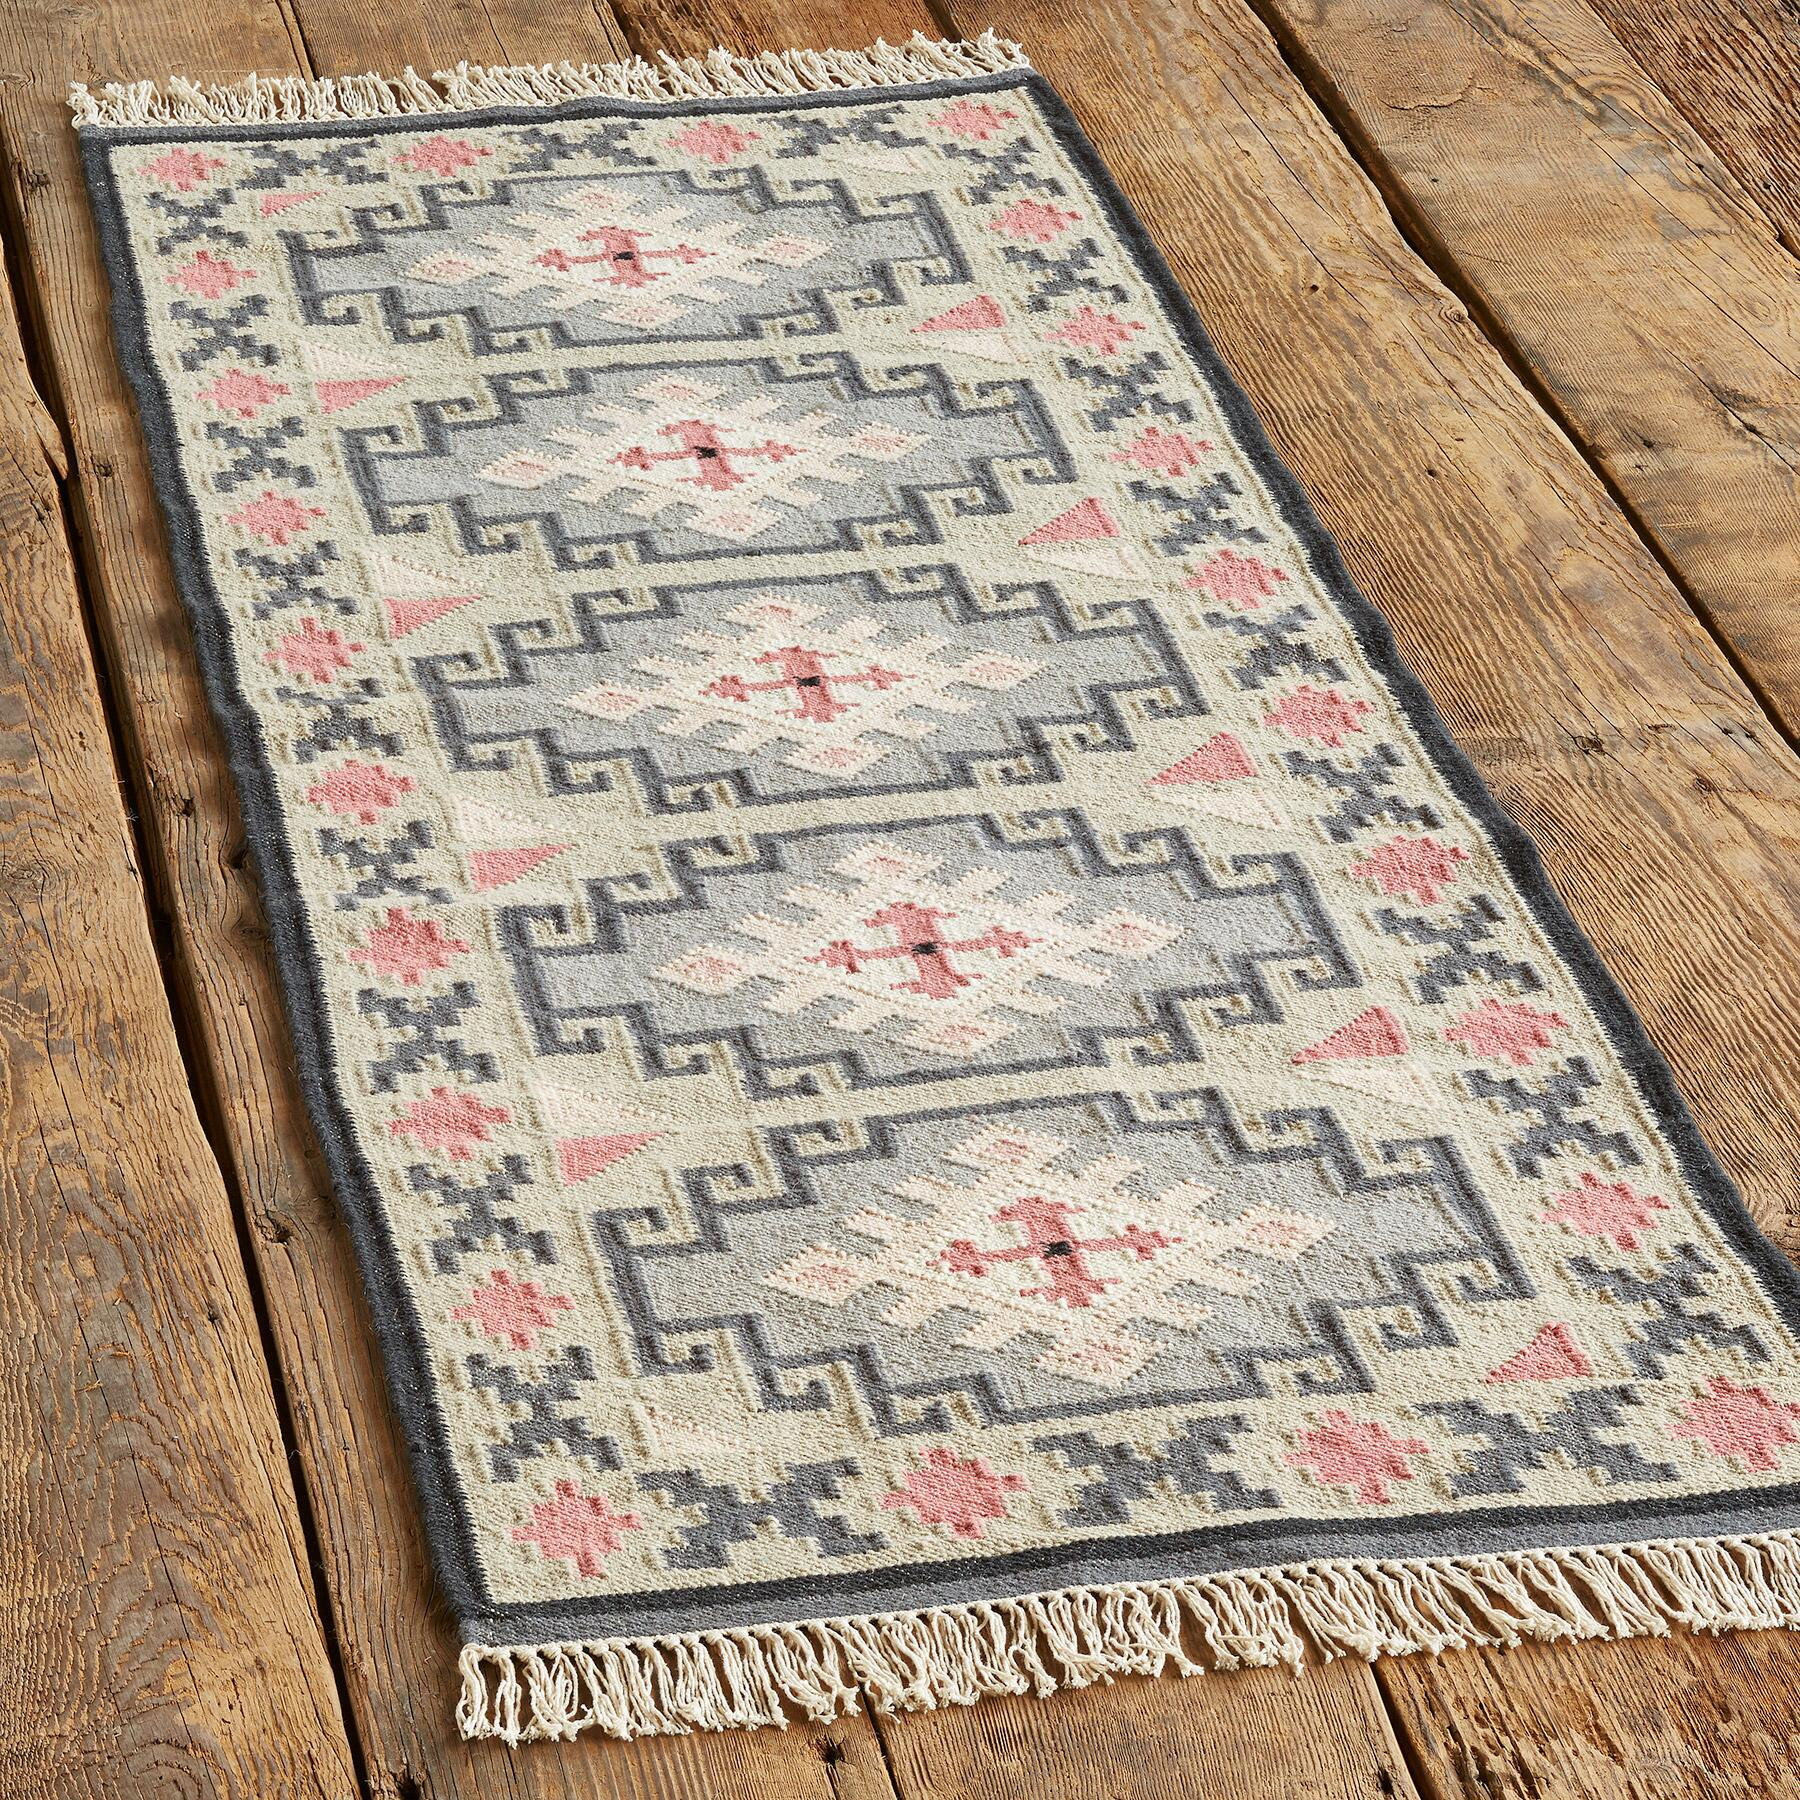 VALLEY OF THE STARS KILIM RUG - SM: View 3